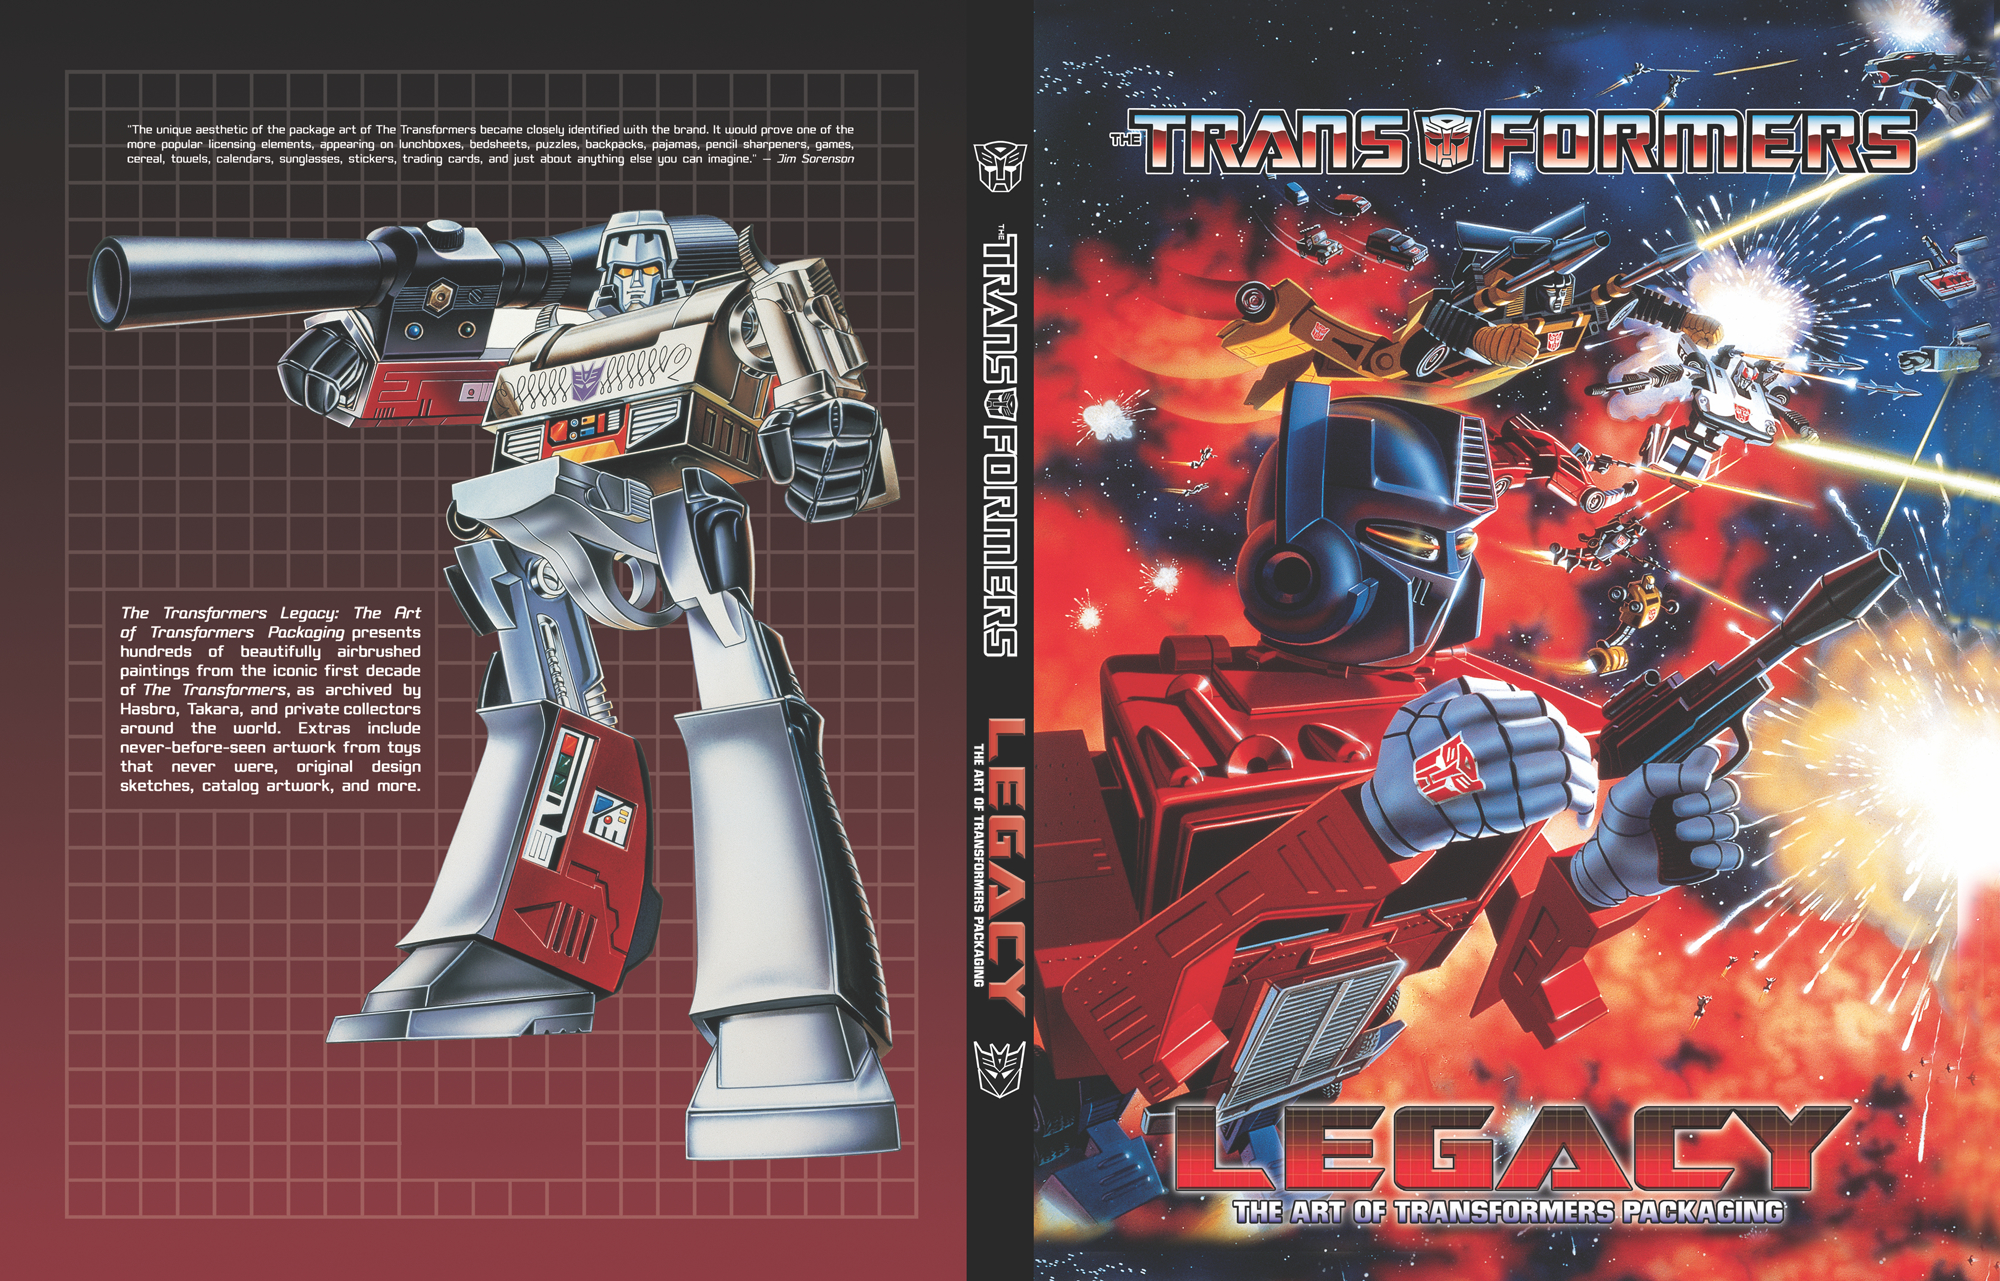 TRANSFORMERS LEGACY ART OF TRANSFORMERS PACKAGING SC